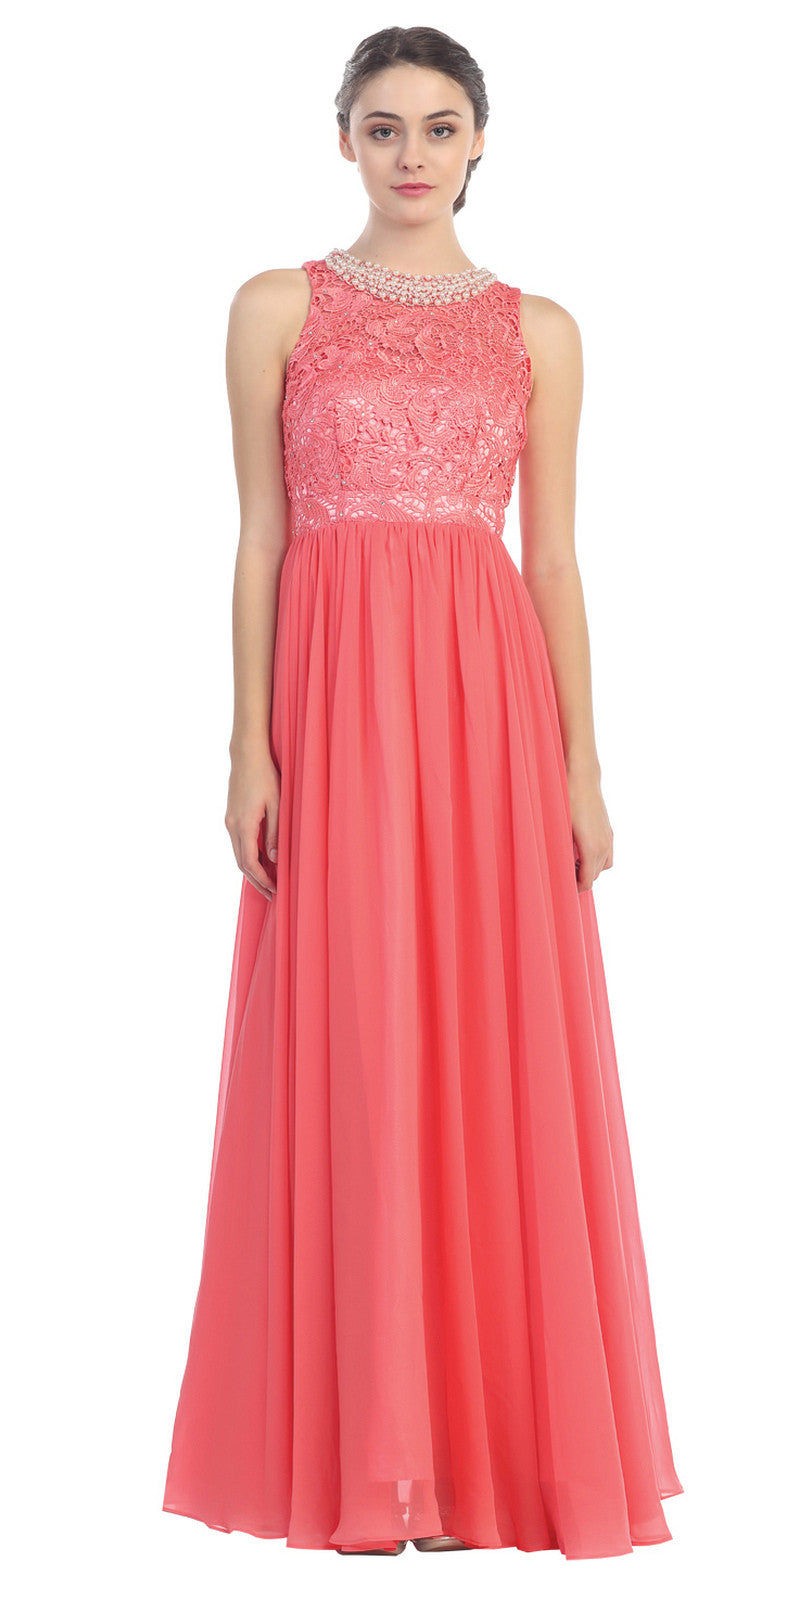 Empire Waist Chiffon Evening Gown Coral A Line Full Length